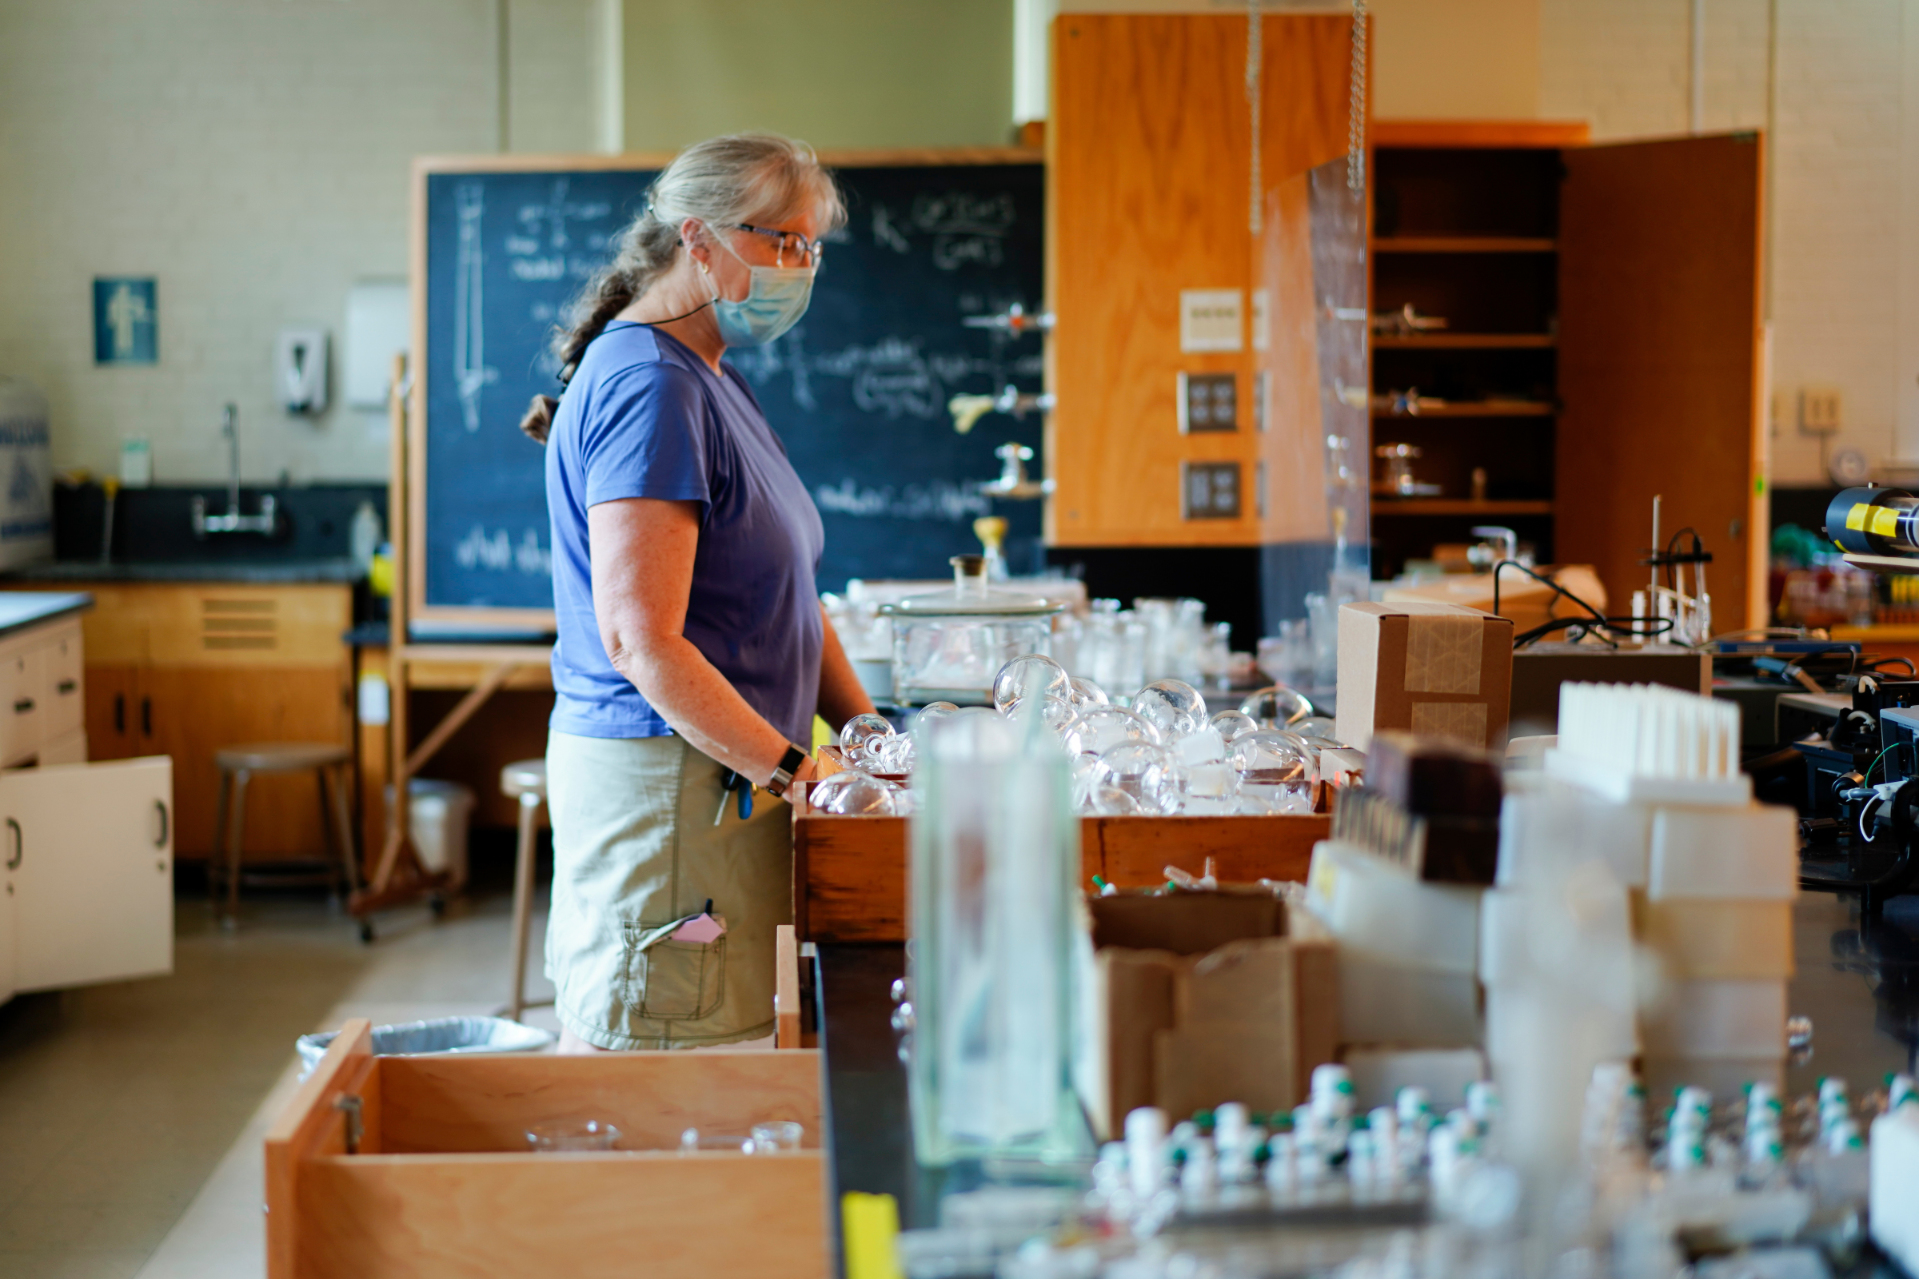 Lorna Clark, in her 30th year of employment with Bates as an assistant in instruction with the departments of chemistry and biochemistry, packs up glassware in the advanced chemistry laboratory on Dana Chemistry Hall's third floor. (Phyllis Graber Jensen/Bates College)